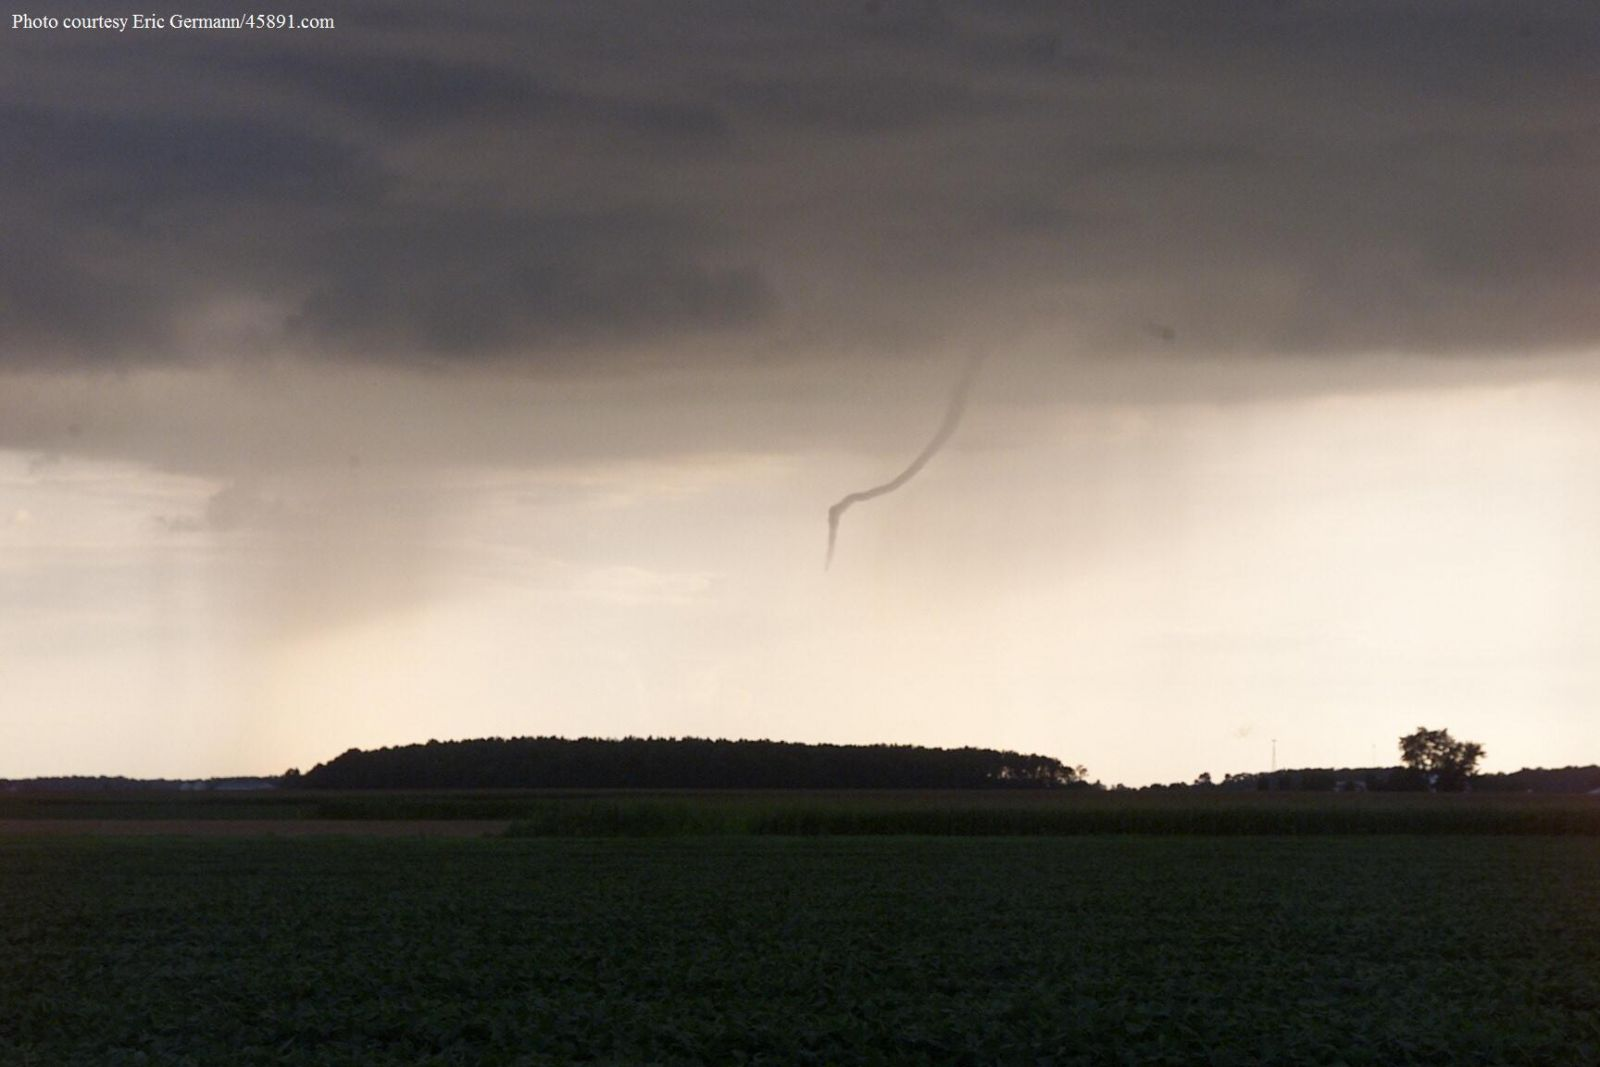 Northern Indiana Funnel Cloud Tornado And Tornado Damage